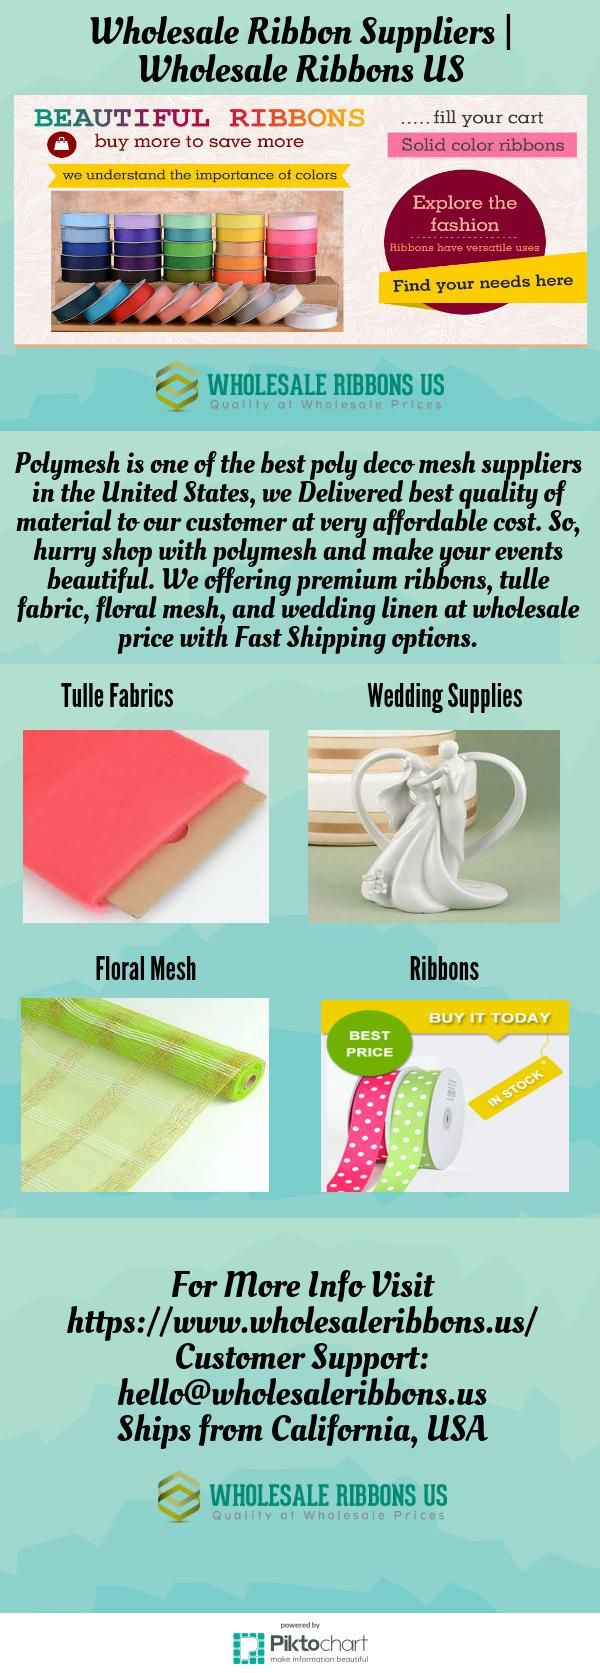 Wholesale Ribbon Suppliers | Wholesale Ribbons US  Polymesh is one of the best poly deco mesh suppliers in the United States, we Delivered best quality of material to our customer at very affordable cost. So, hurry shop with polymesh and make your events beautiful.